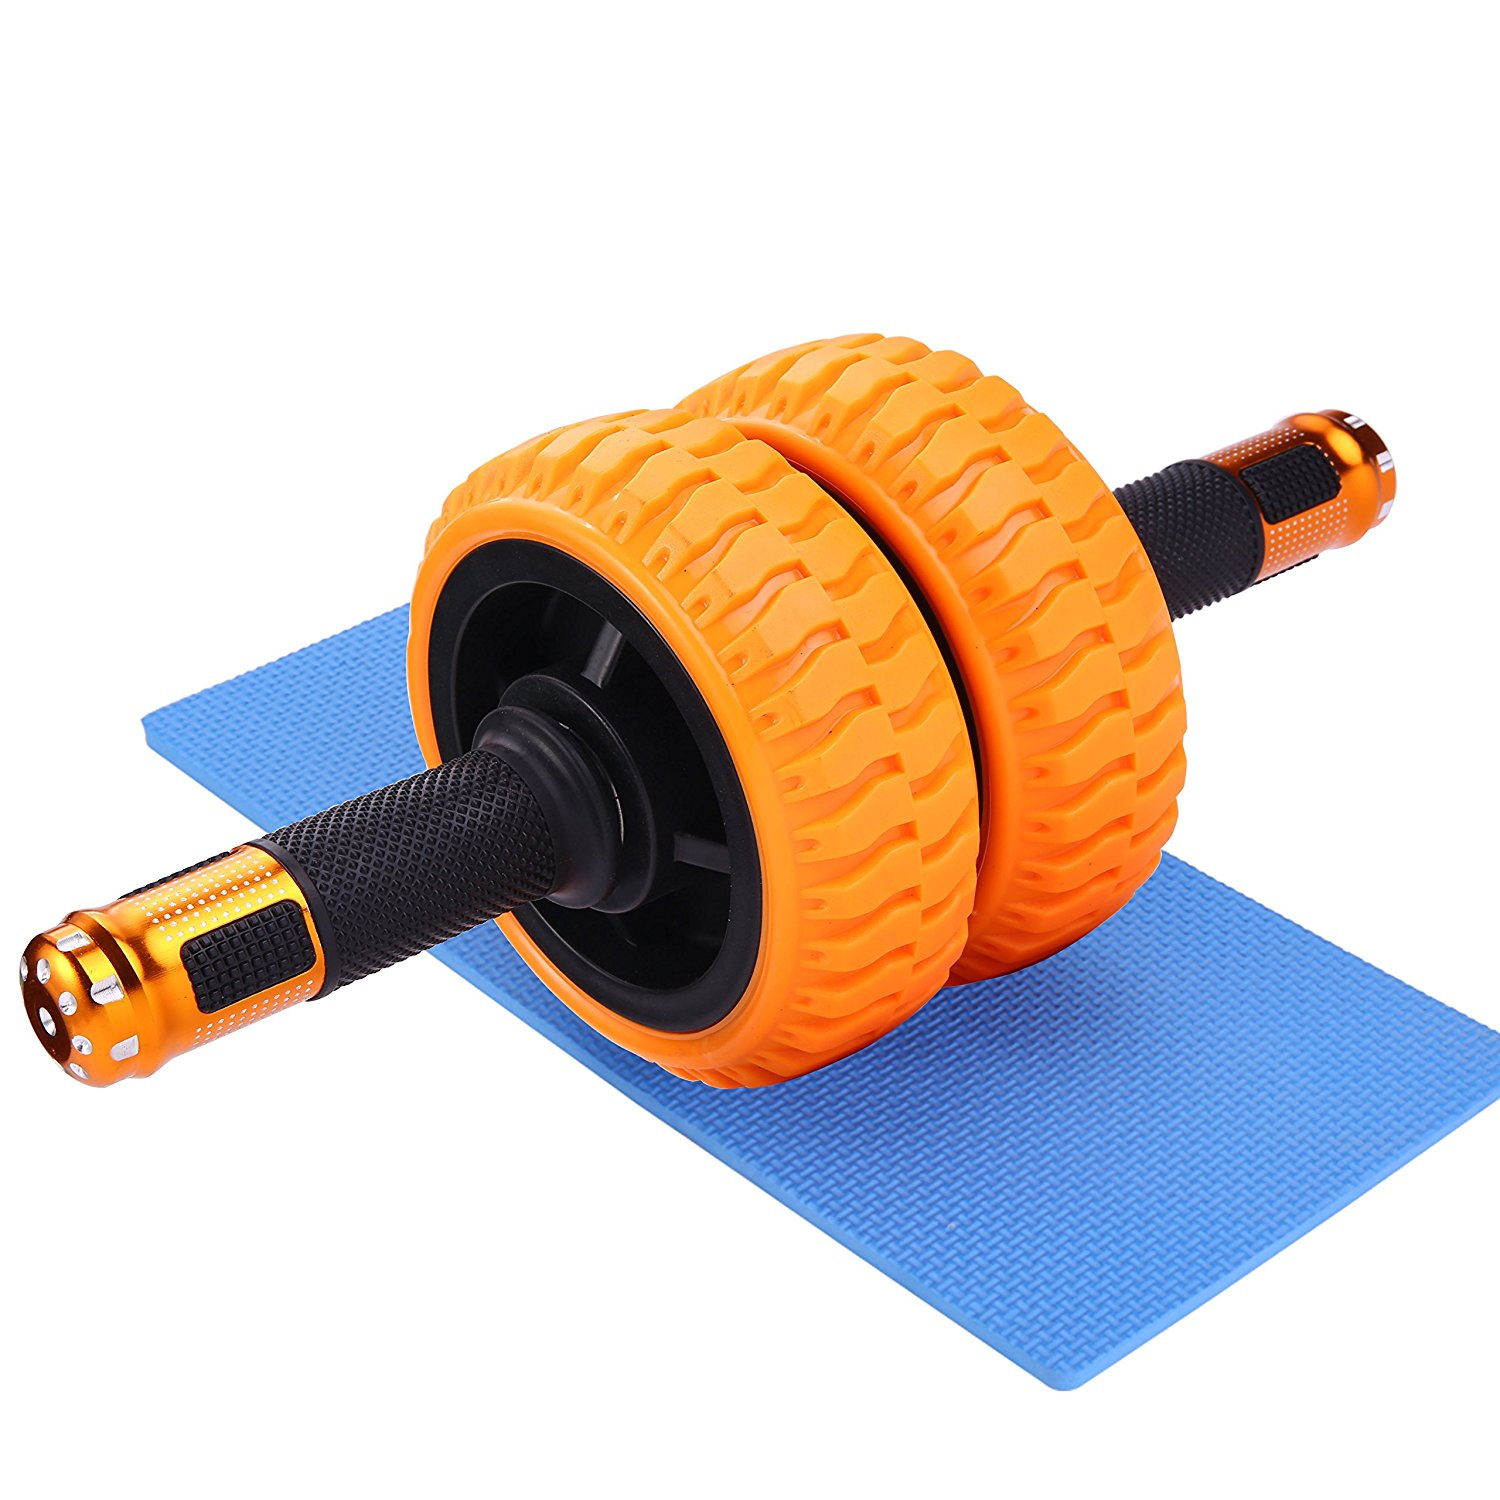 Wnnideo AB Wheel Roller for Exercise Dual Wheels for Extra Stability and Smooth Rolling Widen Roller and Handle Quietly exerpeutic 1000 magnetic hig capacity recumbent exercise bike for seniors